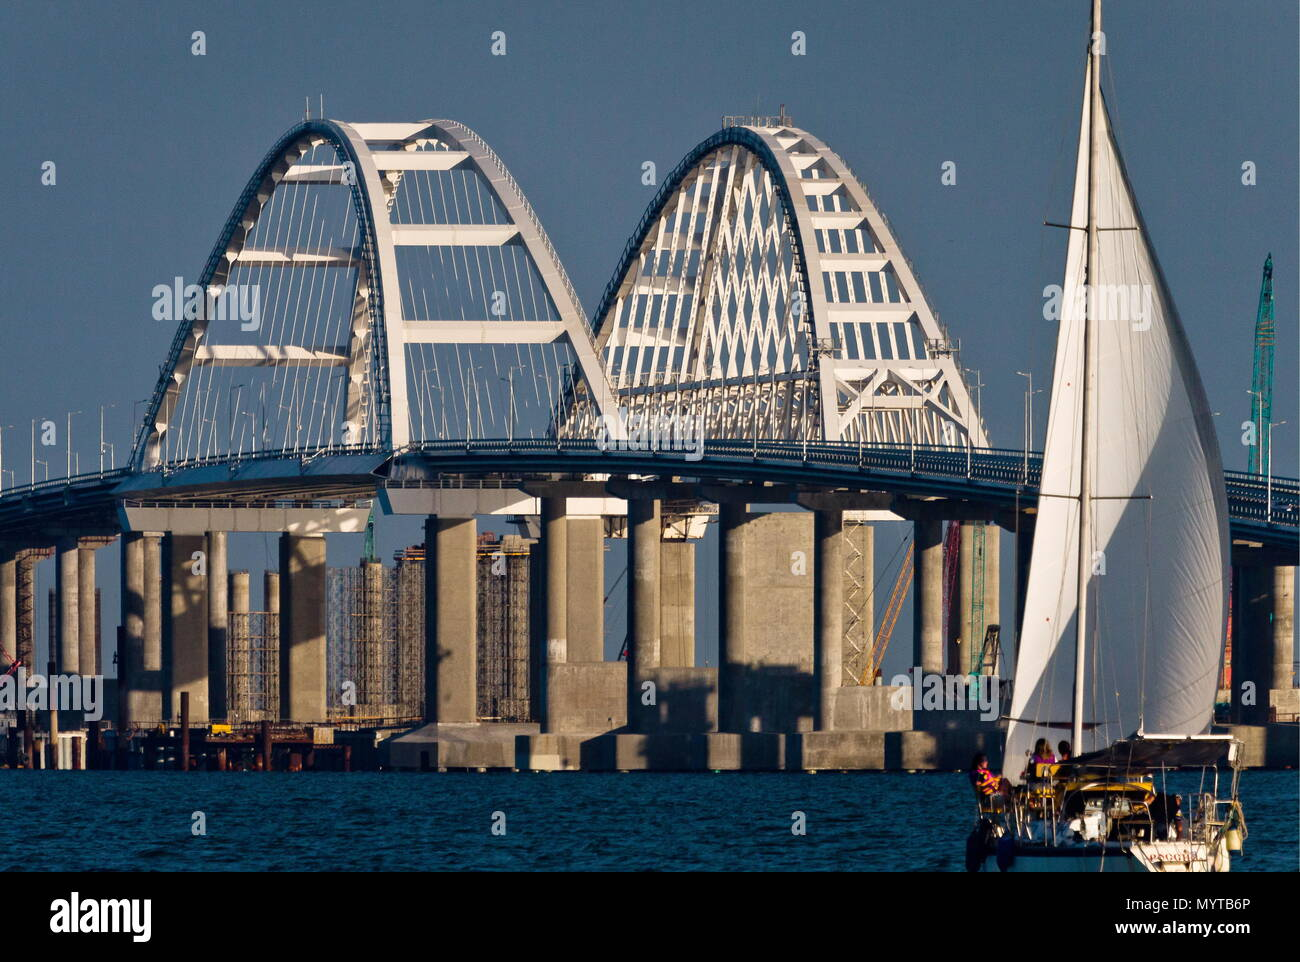 In 2018 Kerch Bridge to the Crimea will be erected 98